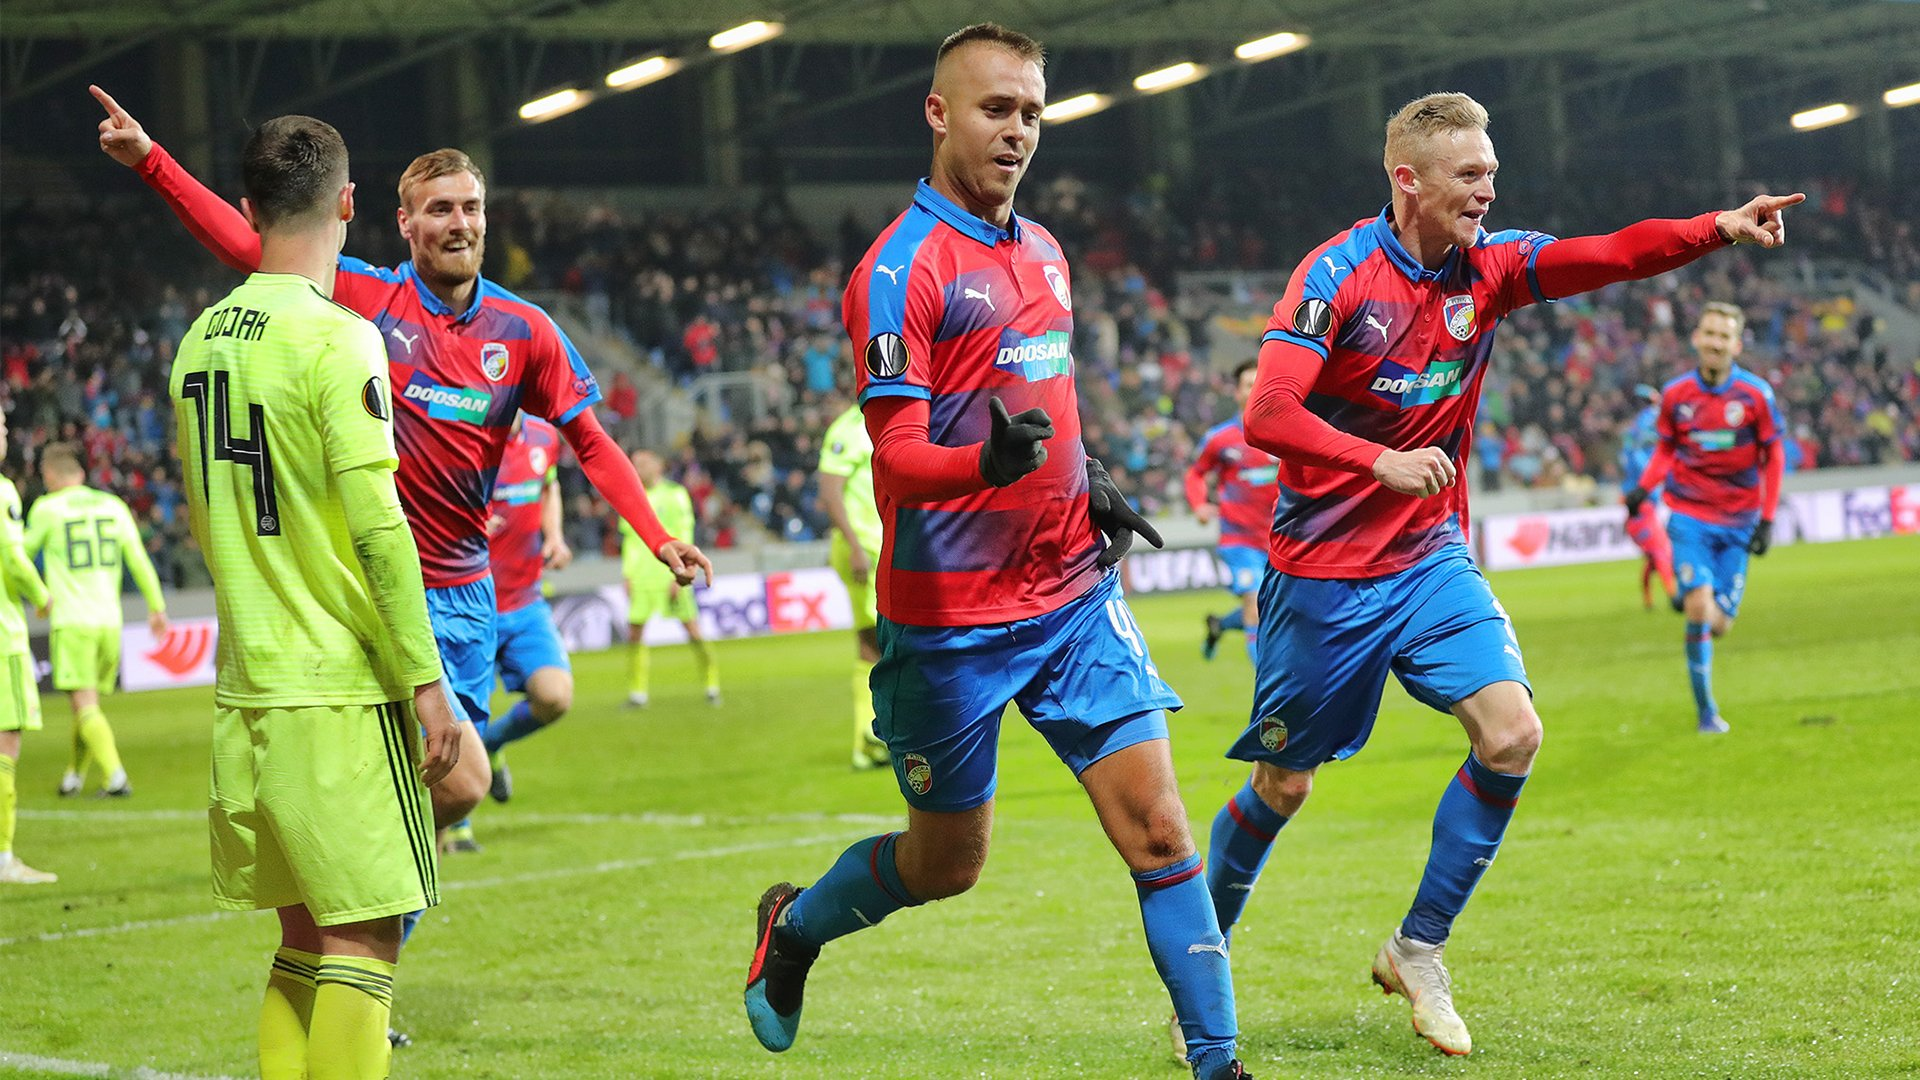 Pernica's night! Defender turned the match against Dinamo Zagreb on Viktoria's side by two goals